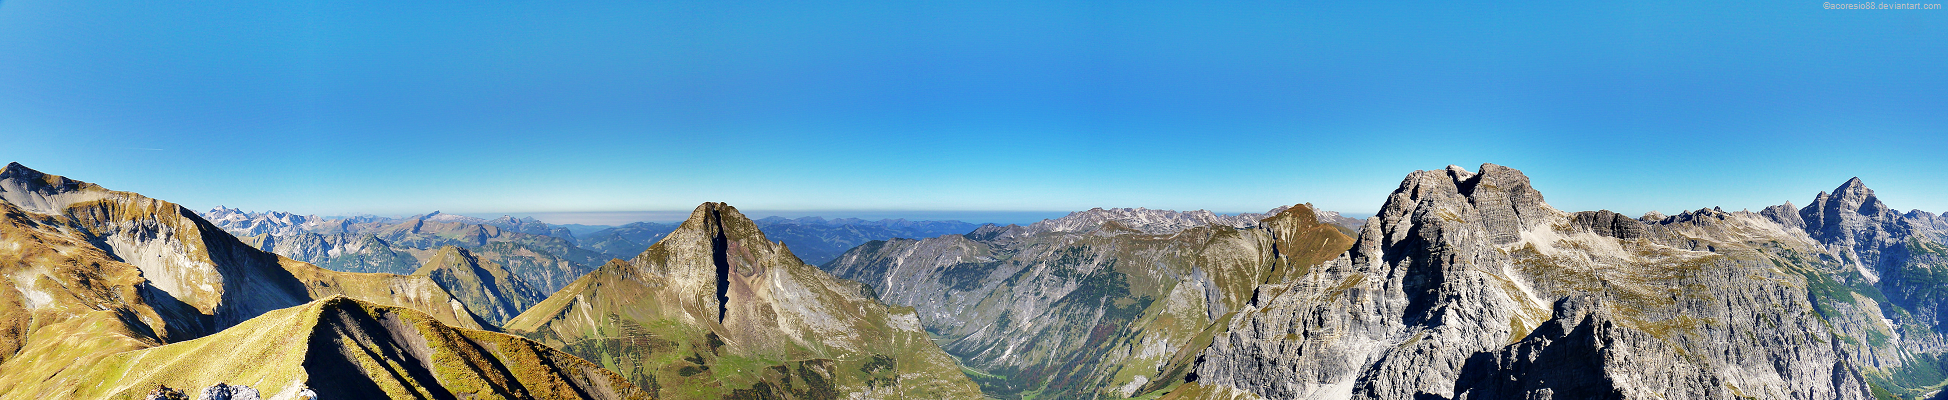 Allgaeu Alps panoramic 4 by acoresjo88